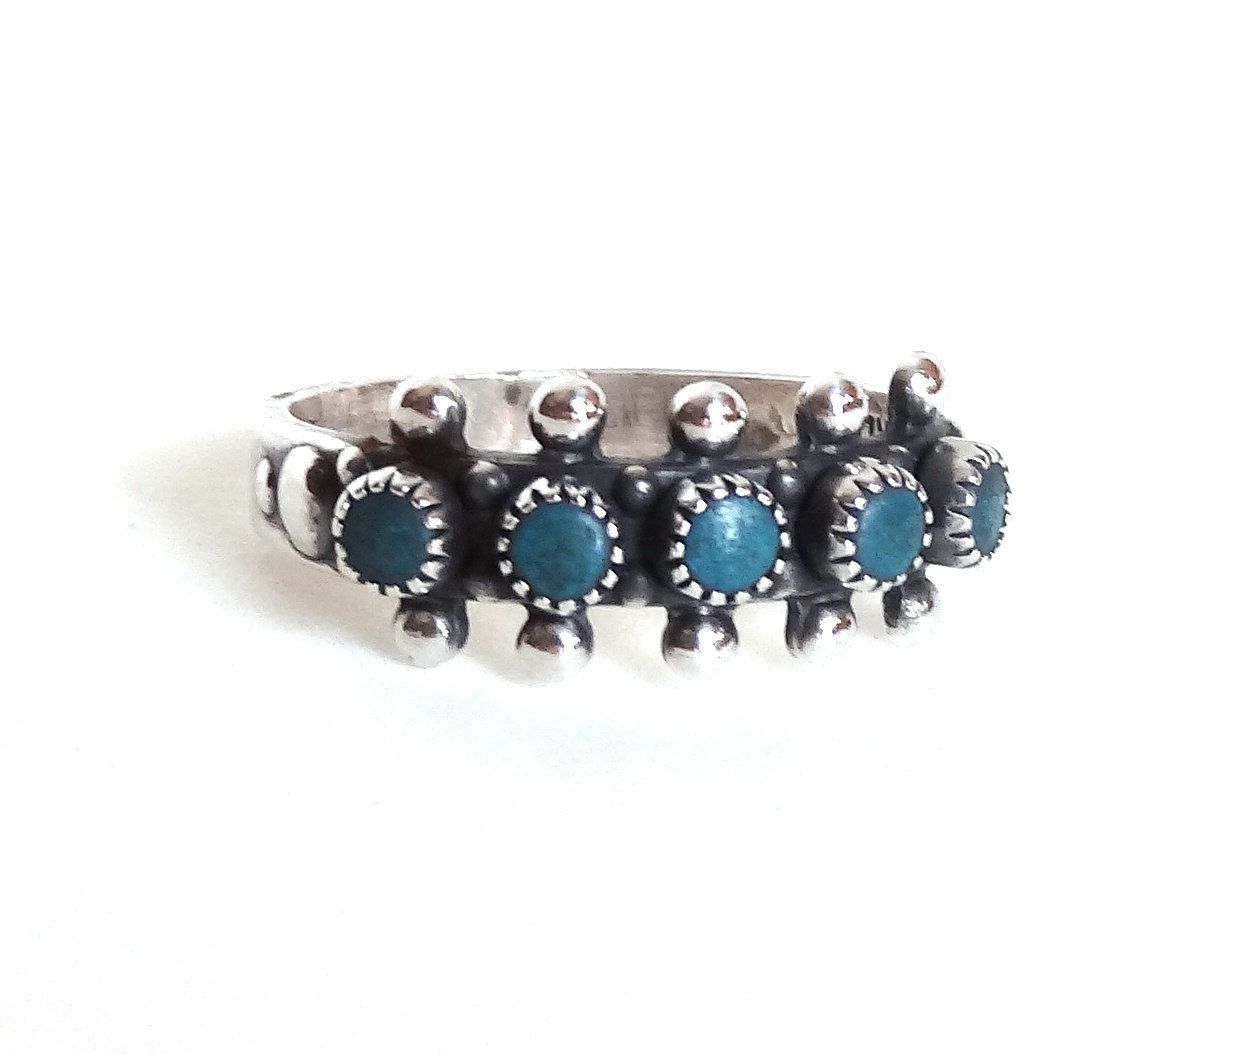 navajo wedding rings Vintage Turquoise Ring Sterling Silver Wedding Band Native American Indian Size 7 Mans Mens Unisex SANFORD